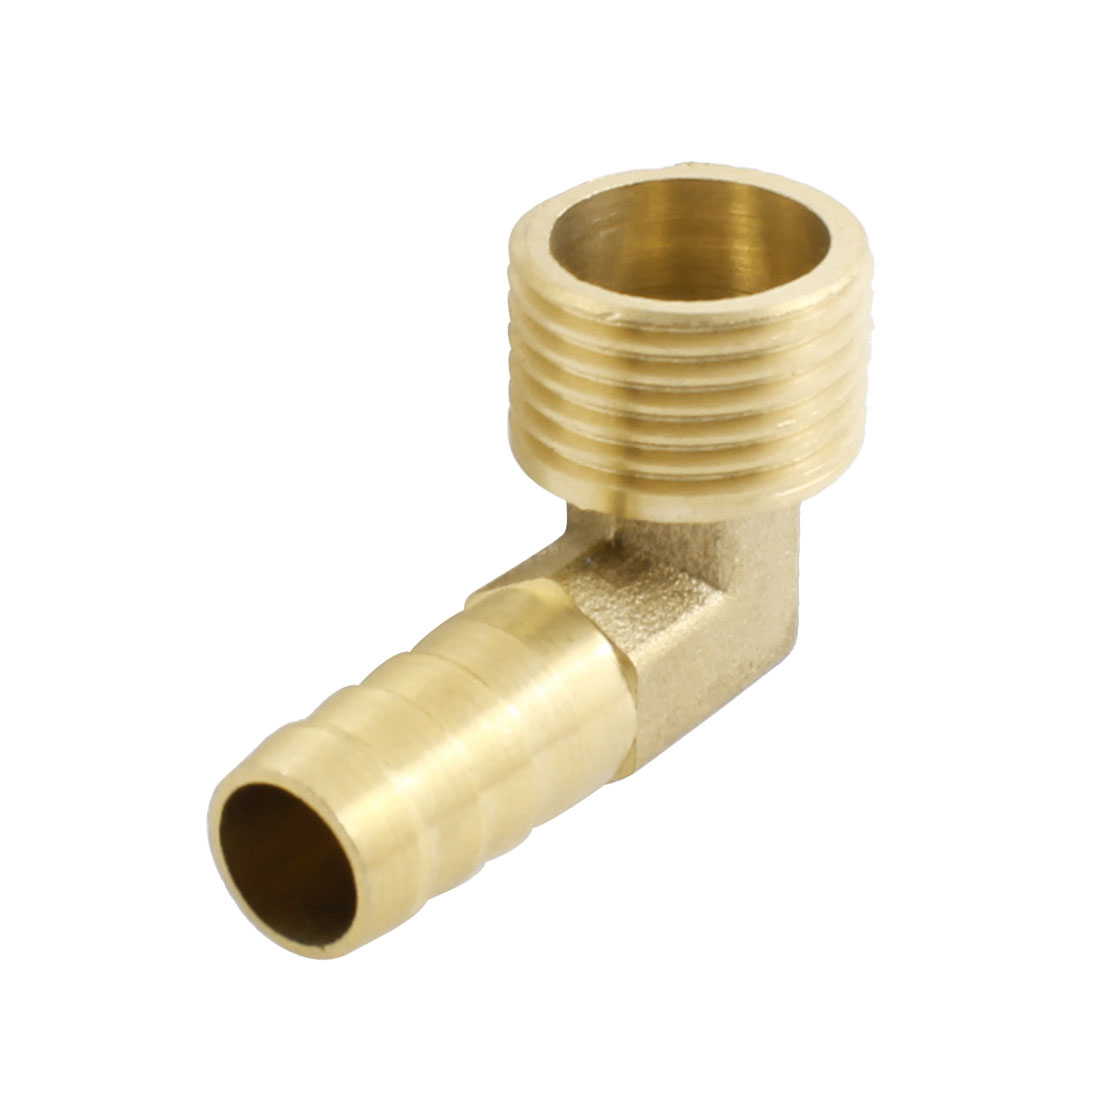 Air Pneumatic 1/2PT Male Thread 12mm Tube Dia Right Angle Barb Coupler Fitting Joint Connector